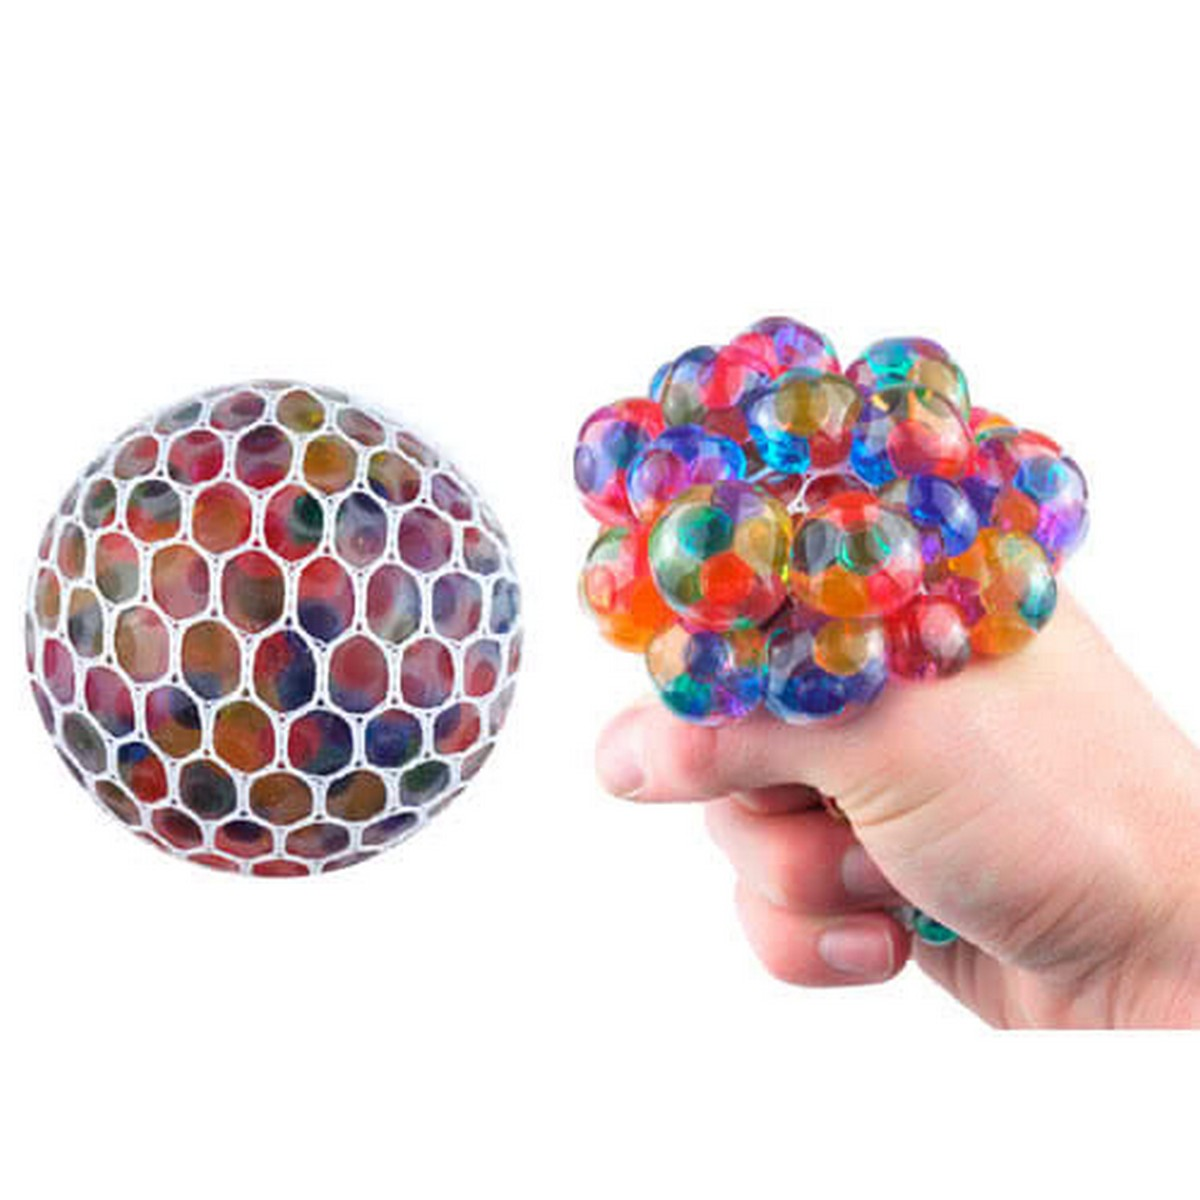 Magic Colour Changeable Grape Mesh Squish Ball Stress Release Toy Squeezing Rubber Vent Grape Ball, Hand Wrist Toy